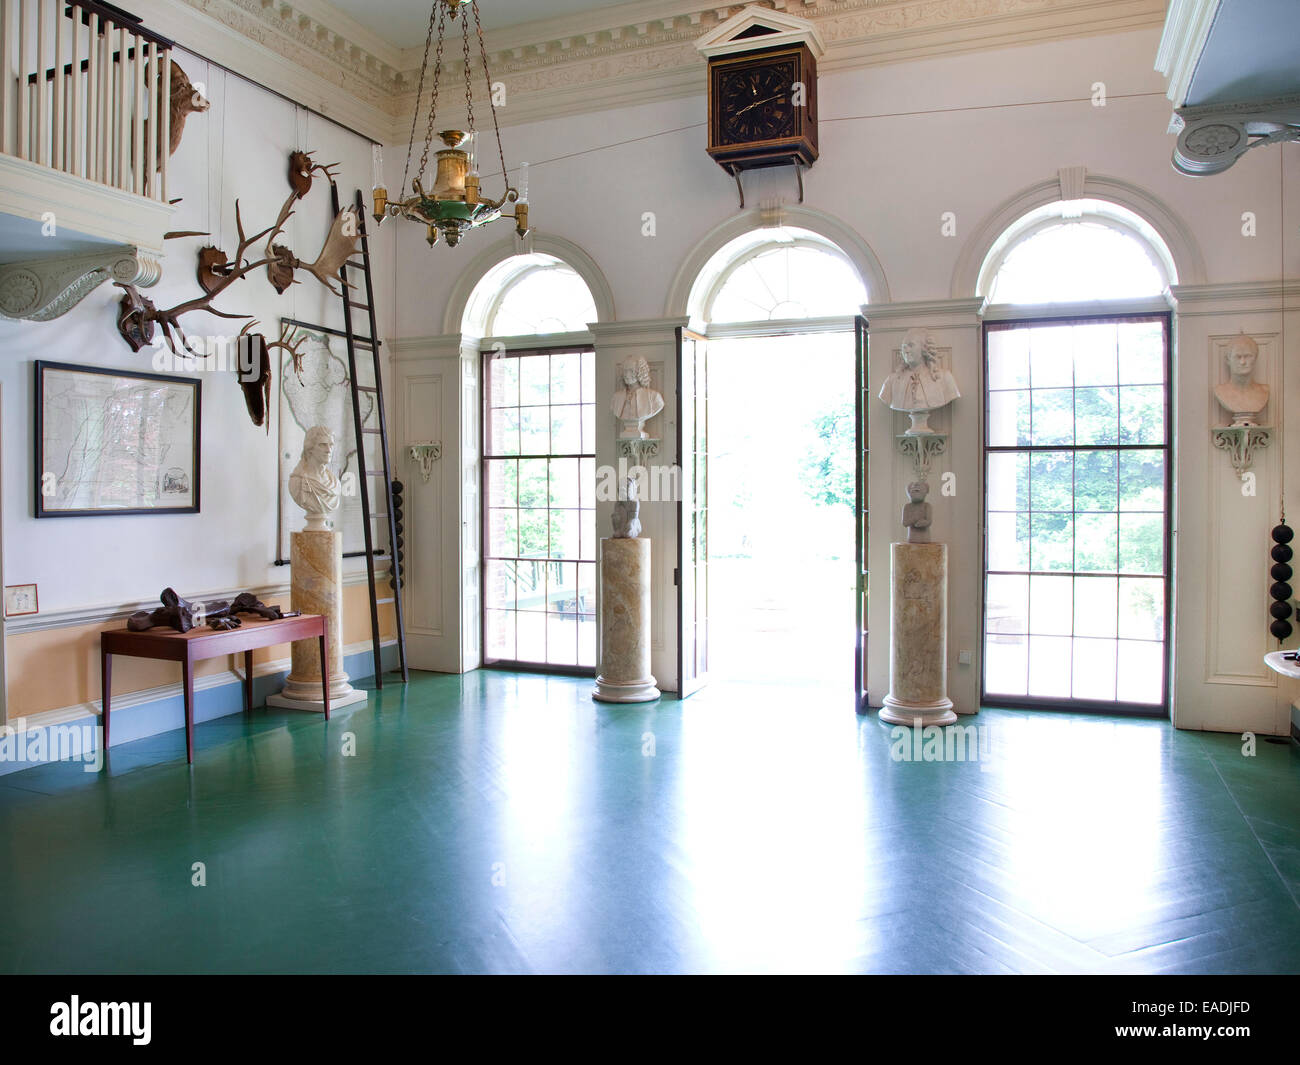 Entrance Hall of Thomas Jefferson's house, Monticello. - Stock Image